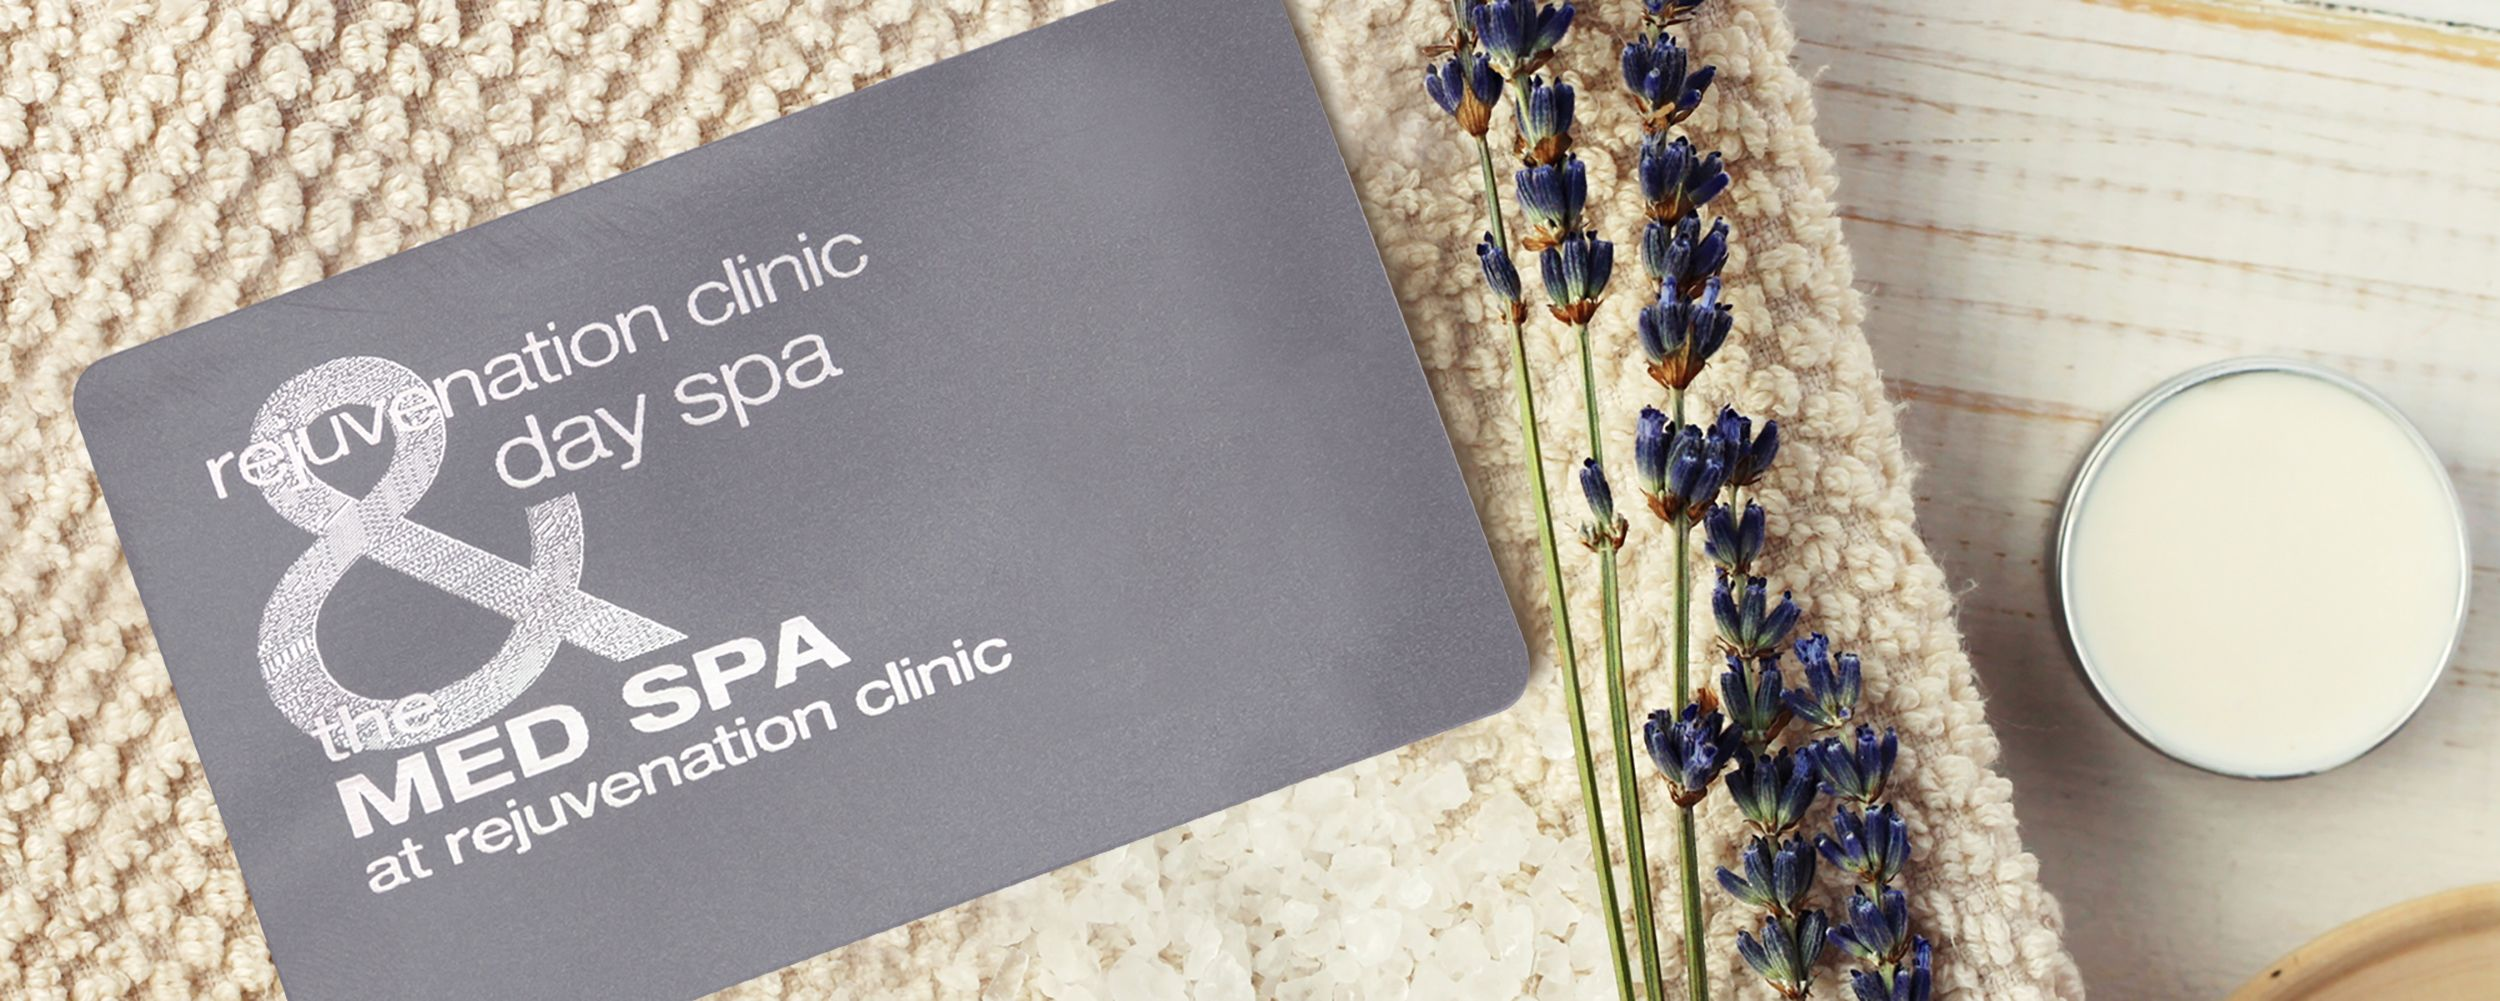 Gift cards rejuvenation clinic day spa gift card